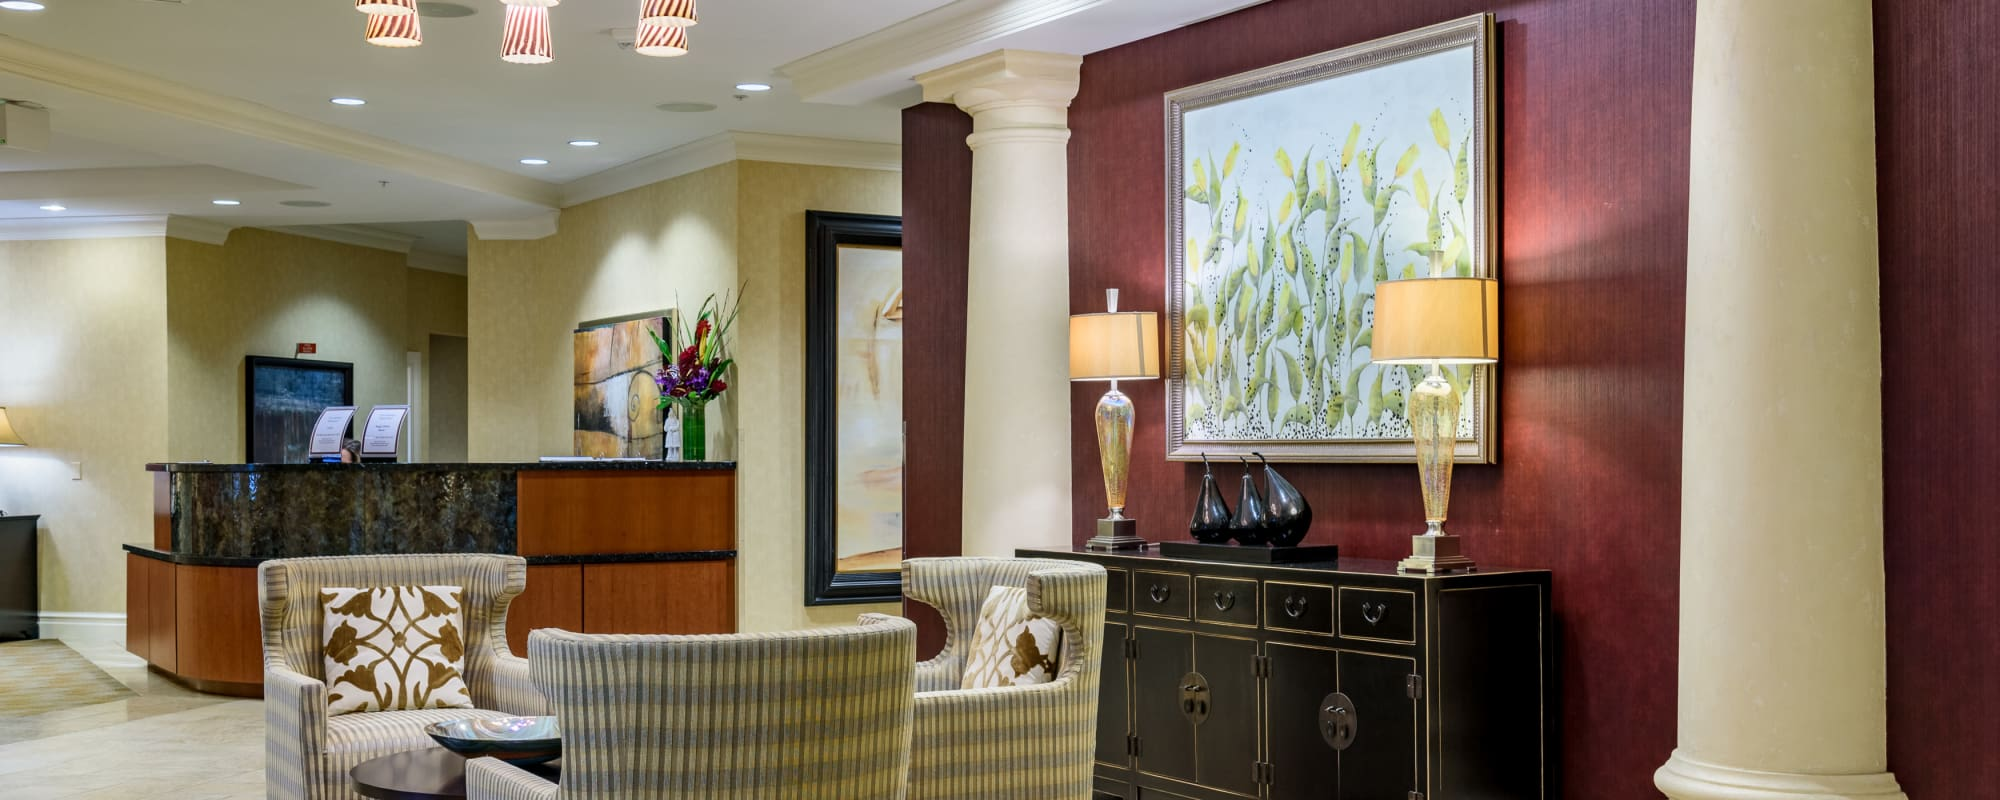 Our senior living community in Bellevue, Washington offer a common area